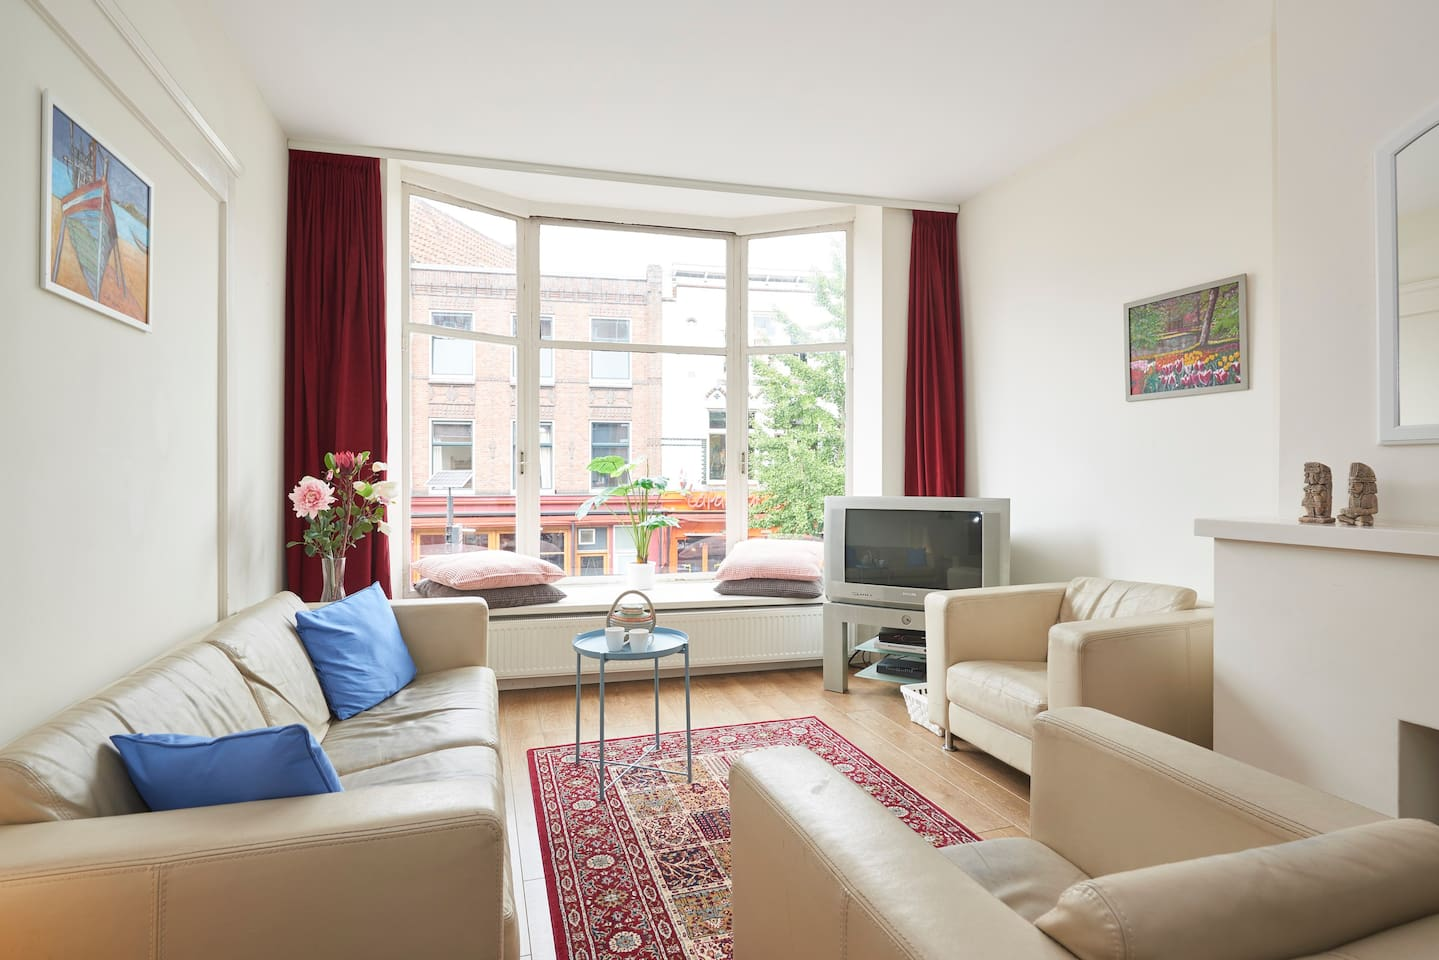 Beautiful apartment on an A+ location with a nice view on a vibrant street right in the city center of Utrecht.